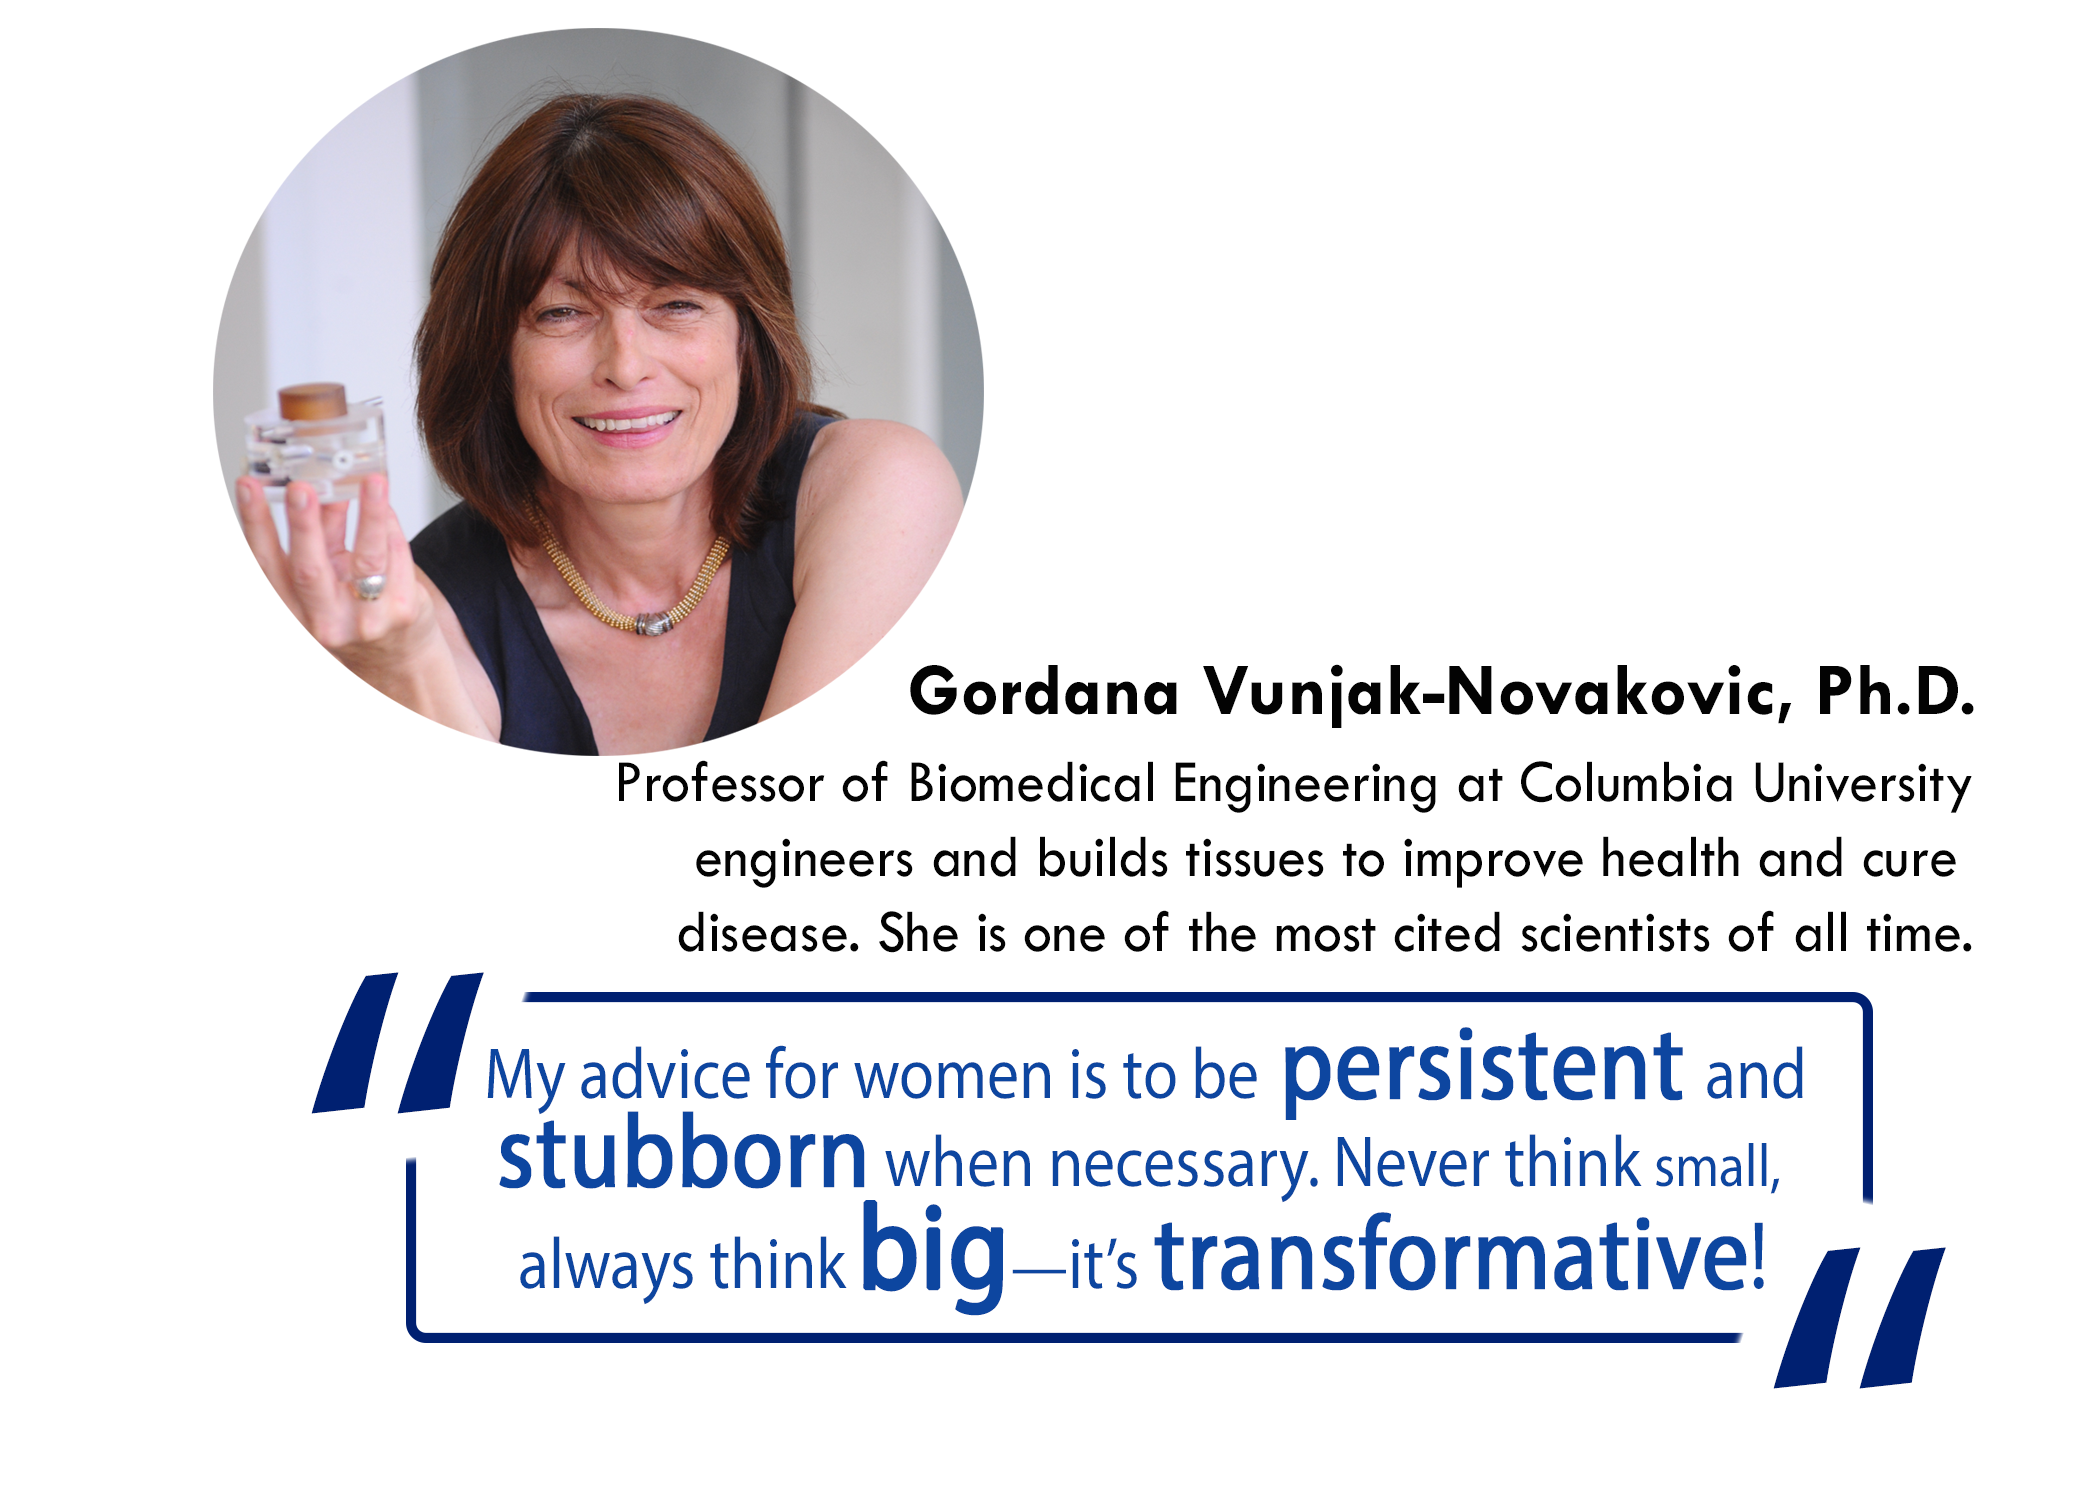 photo of Gordana Vunjak-Novakovic